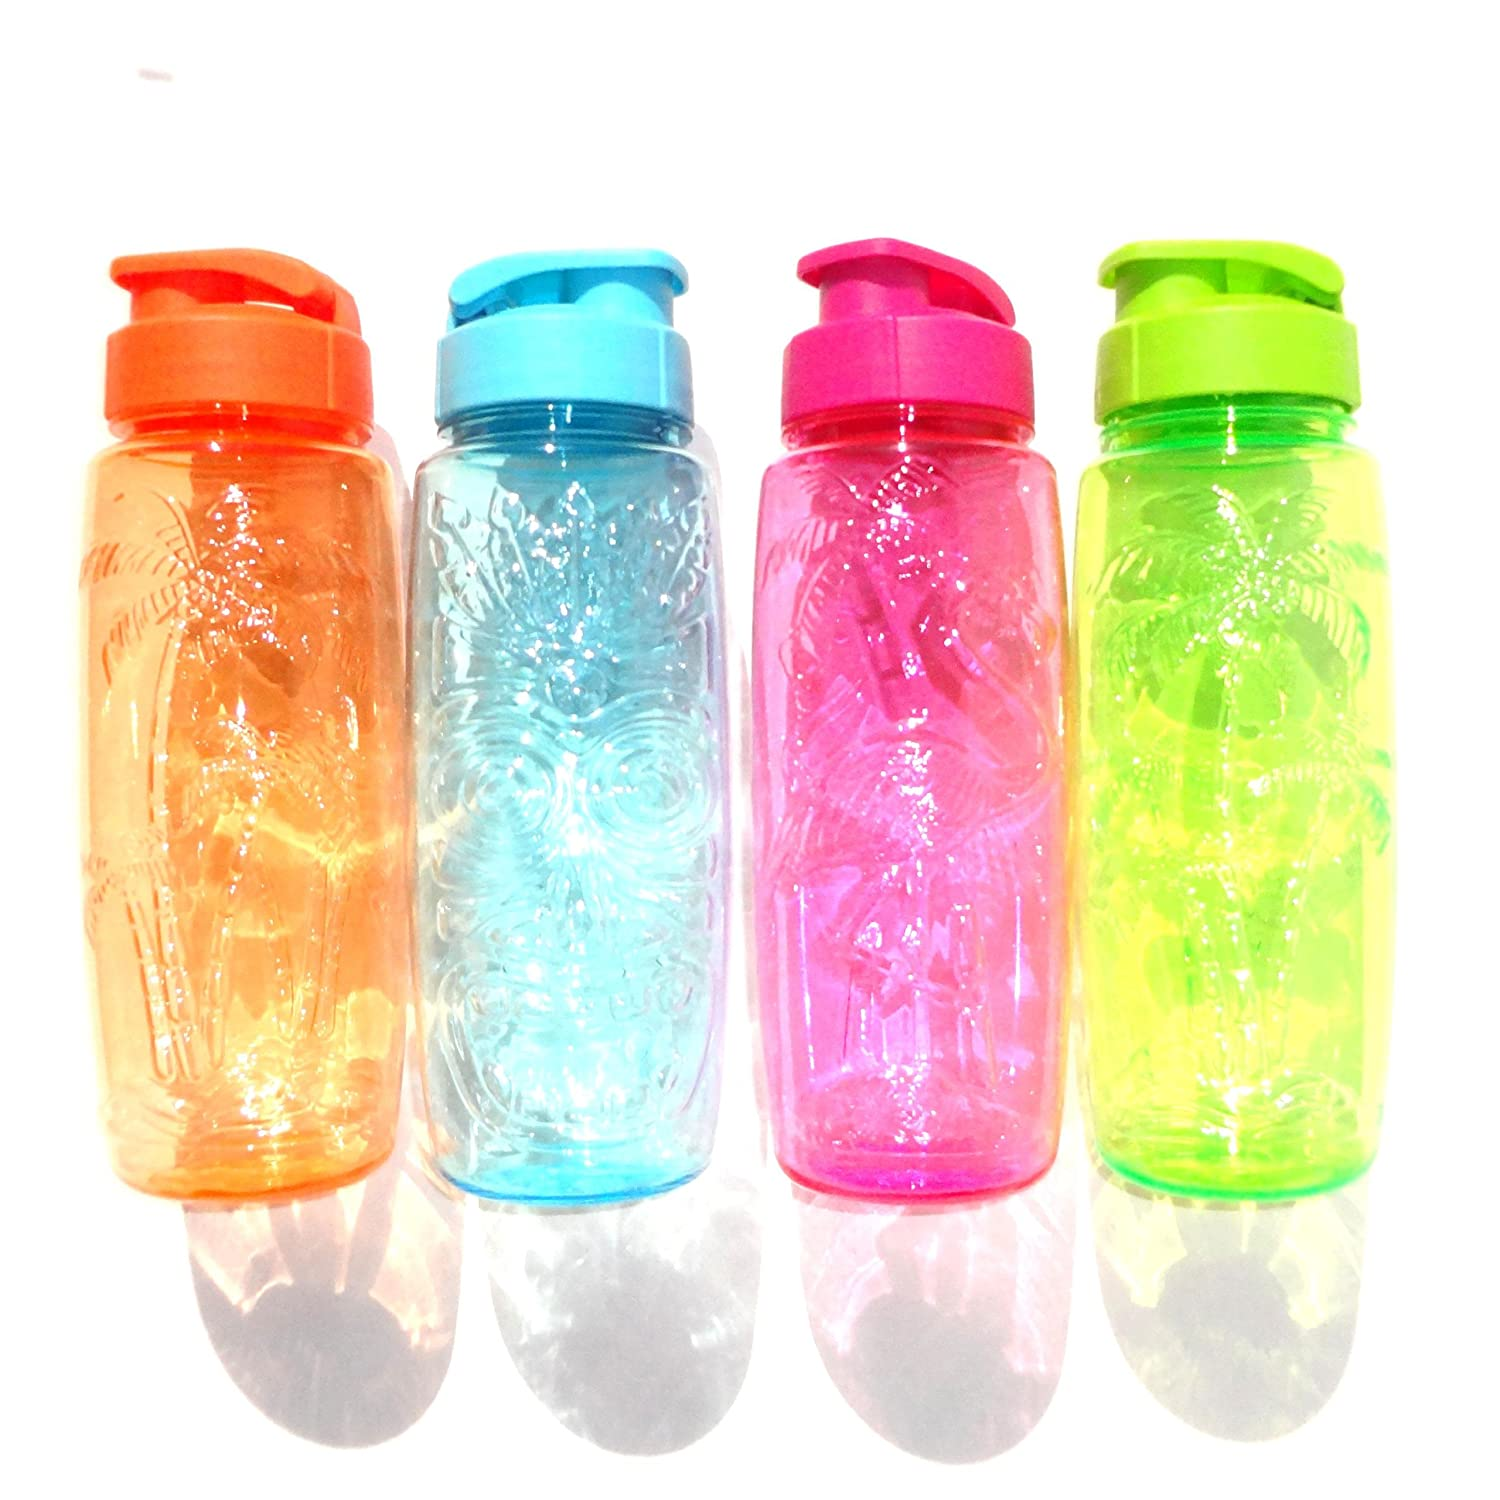 Plastic Acrylic Tumbler Sports Bottle with Flip Top – Luau Theme Set of 4